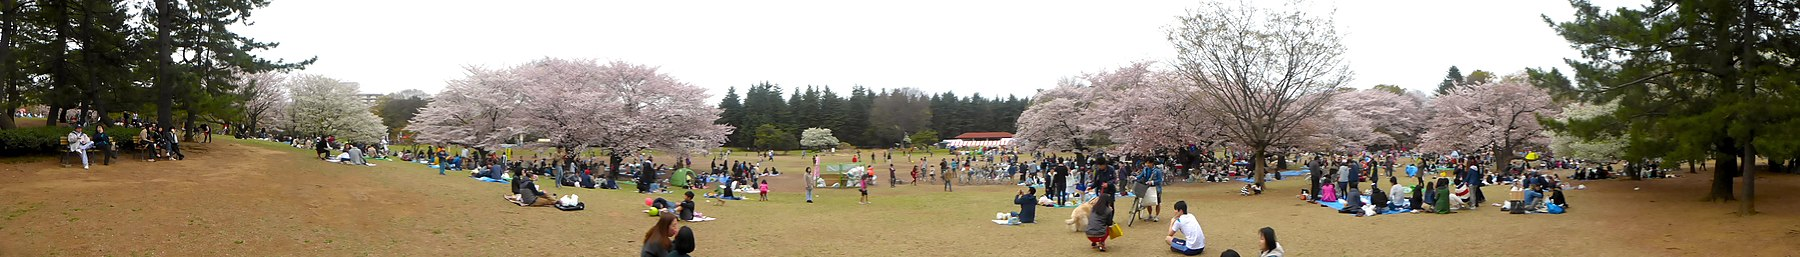 Hikarigaokapark-hanami-panorama-April4-2015 pagebanner.jpg